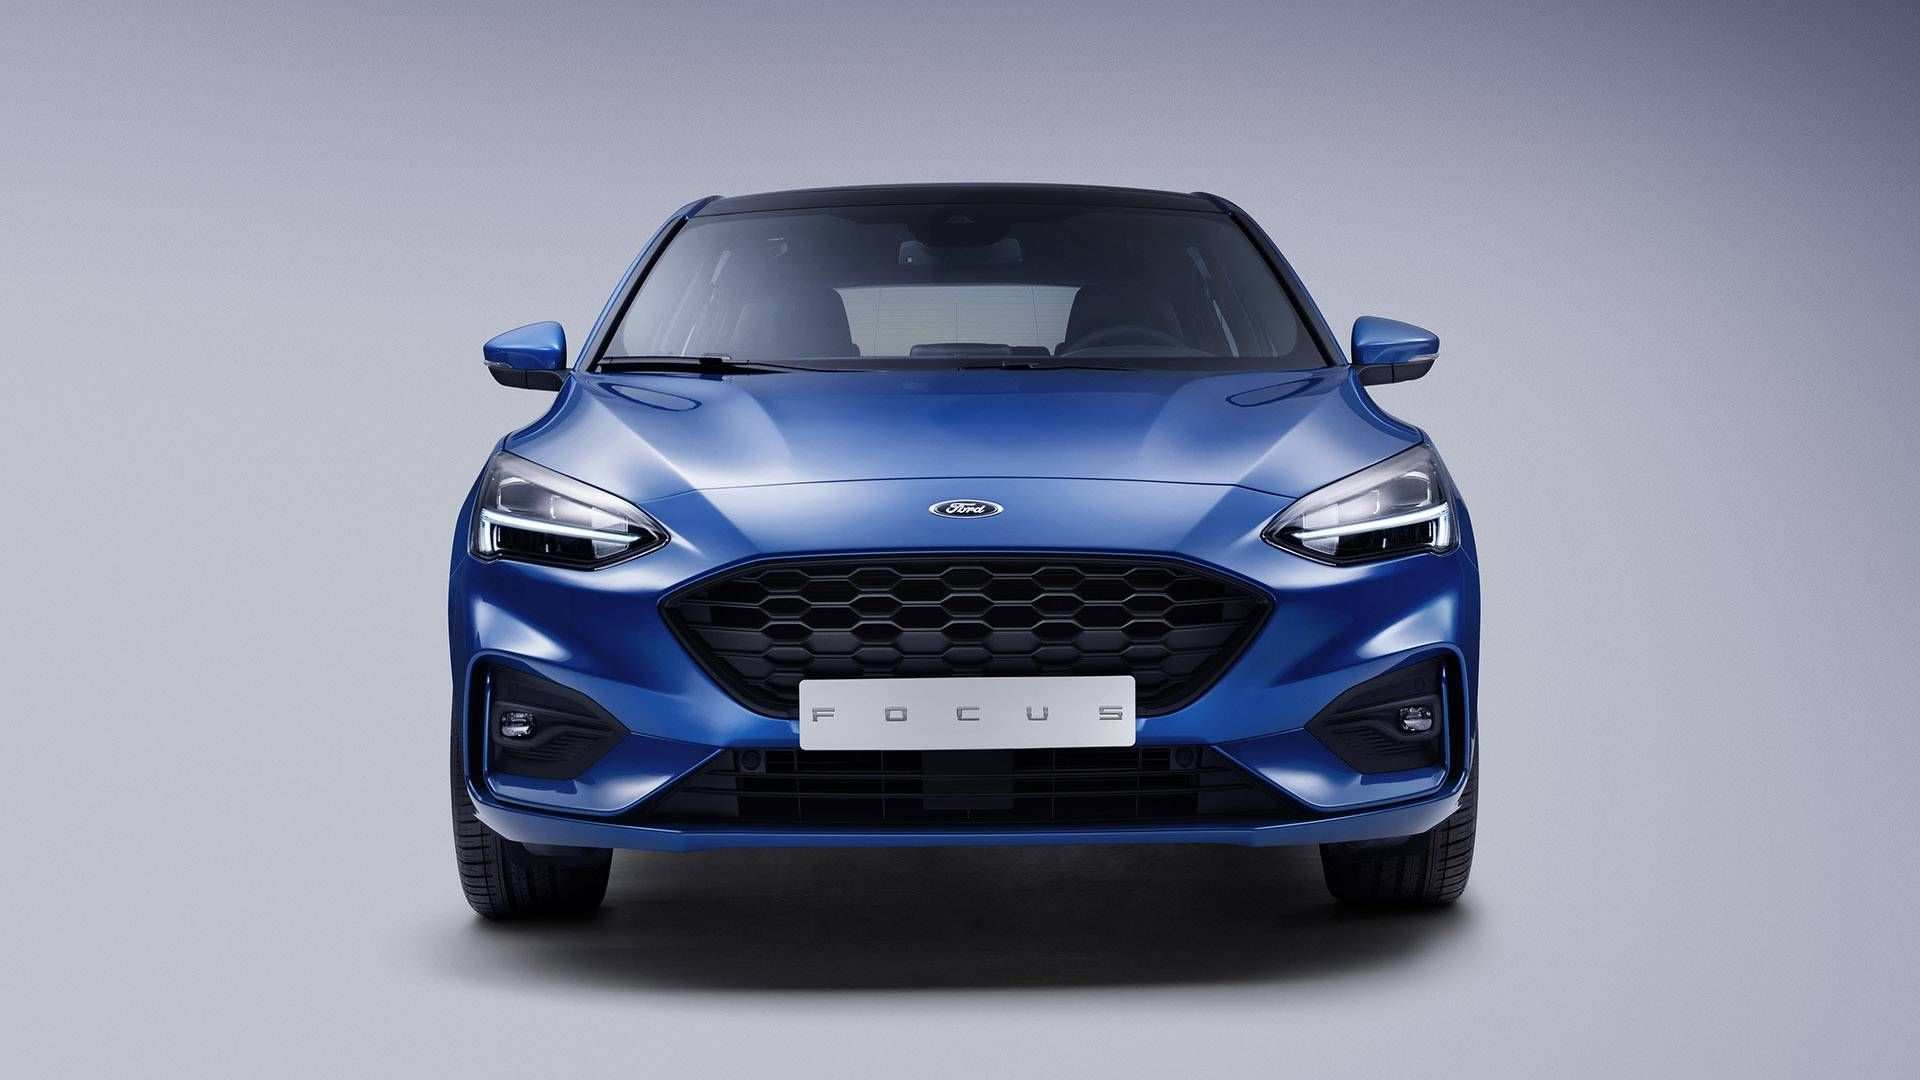 25 Gallery of Best Ford 2019 Lineup Release Date Performance Performance for Best Ford 2019 Lineup Release Date Performance